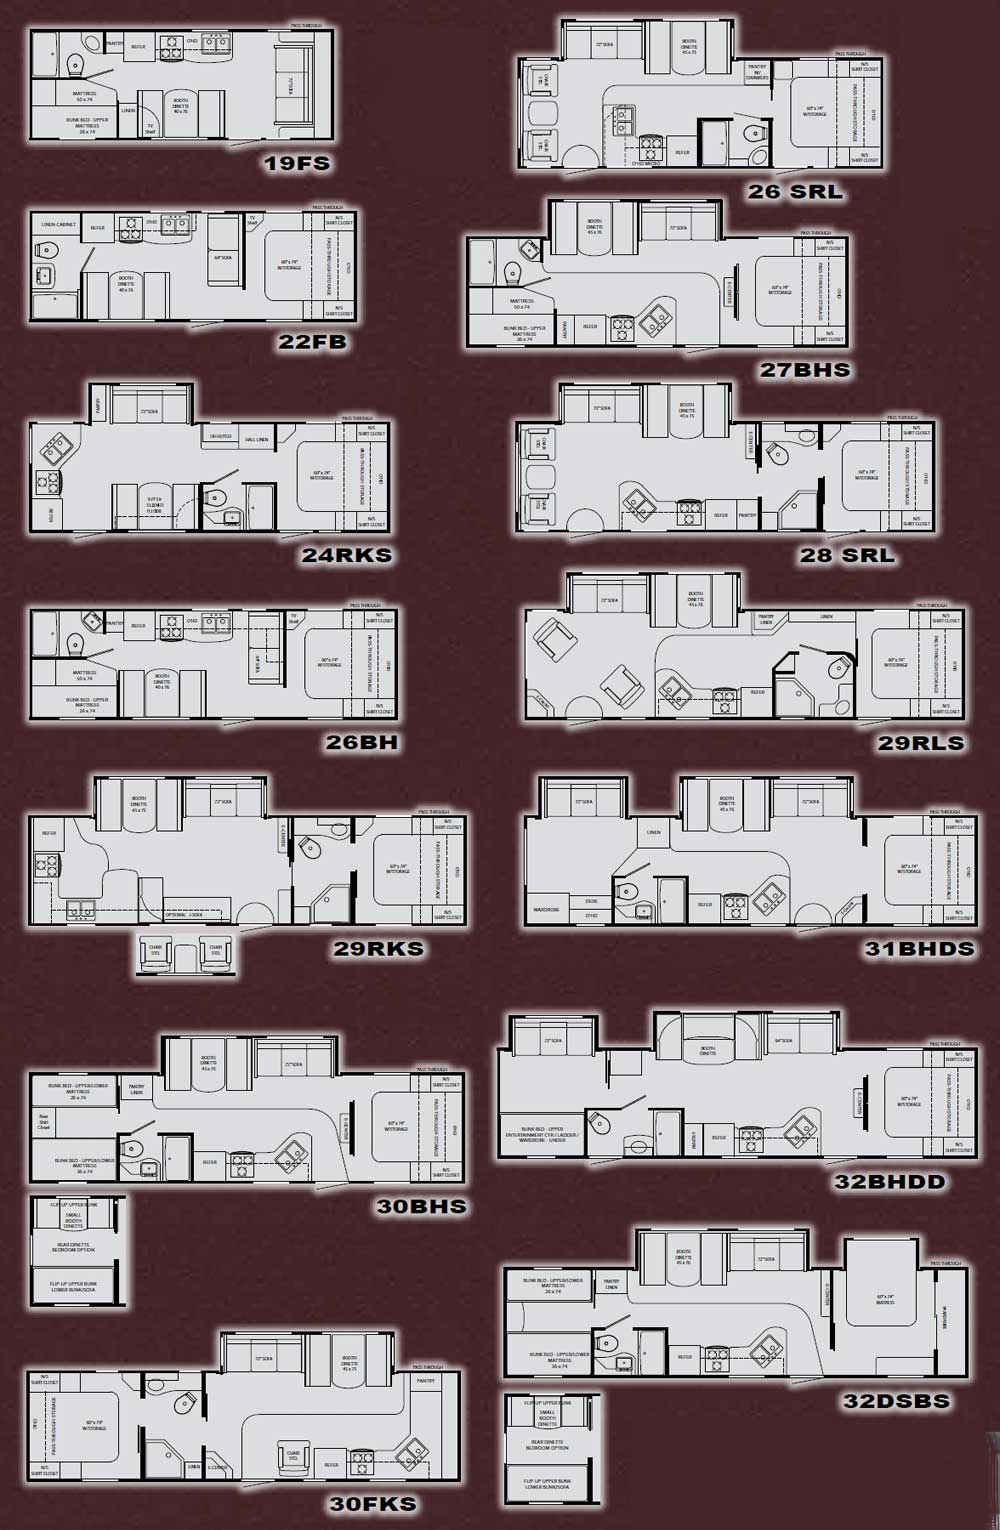 motorhome wiring diagram banshee motor heartland north country travel trailer floorplans - large picture